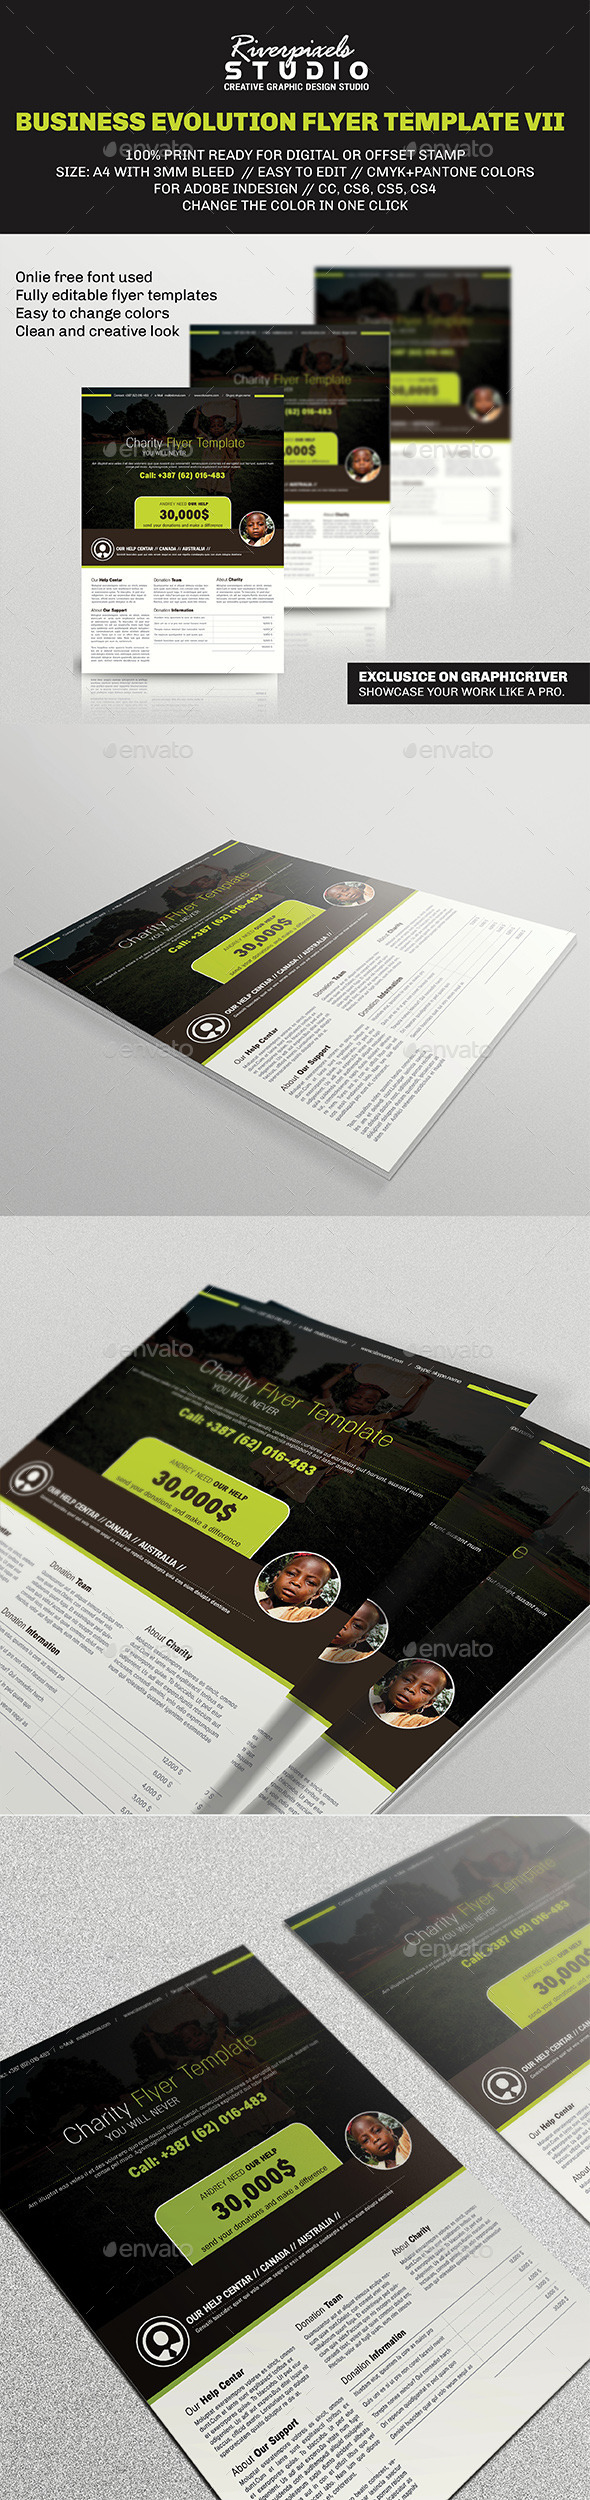 GraphicRiver Business Evolution Flyer Template VII 10037203